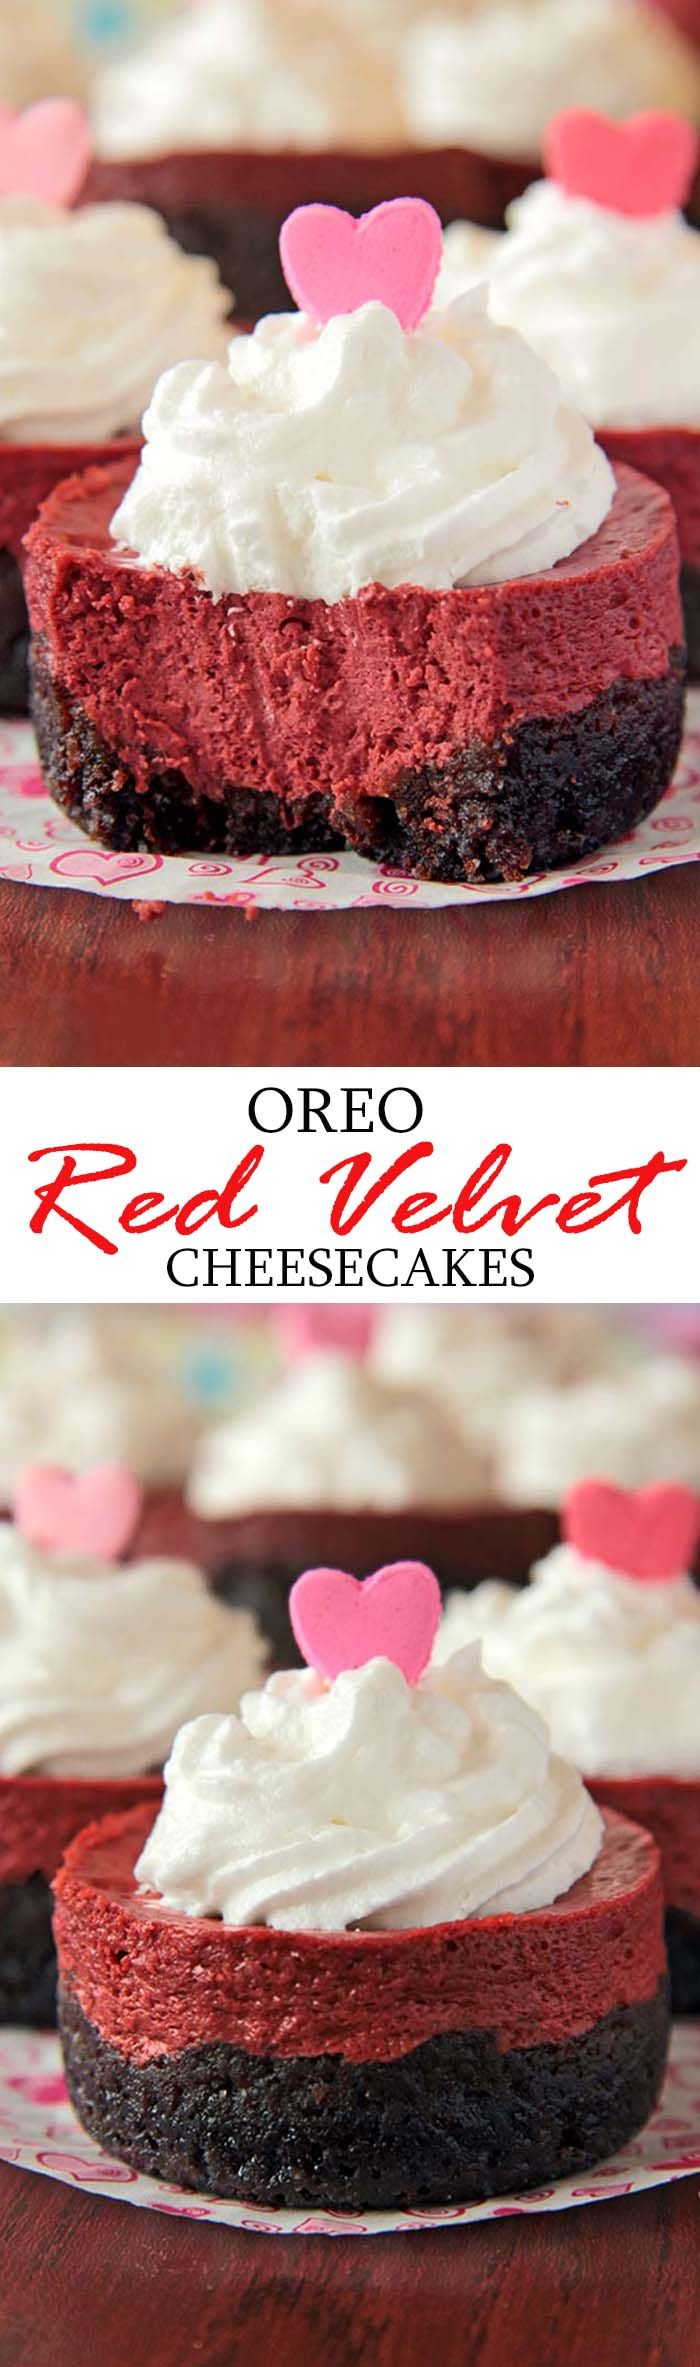 Individual Cheesecakes are simply wonderful, tasty and delicious - a lovely V-Day decoration on your table. #cheesecake #oreo #valentine